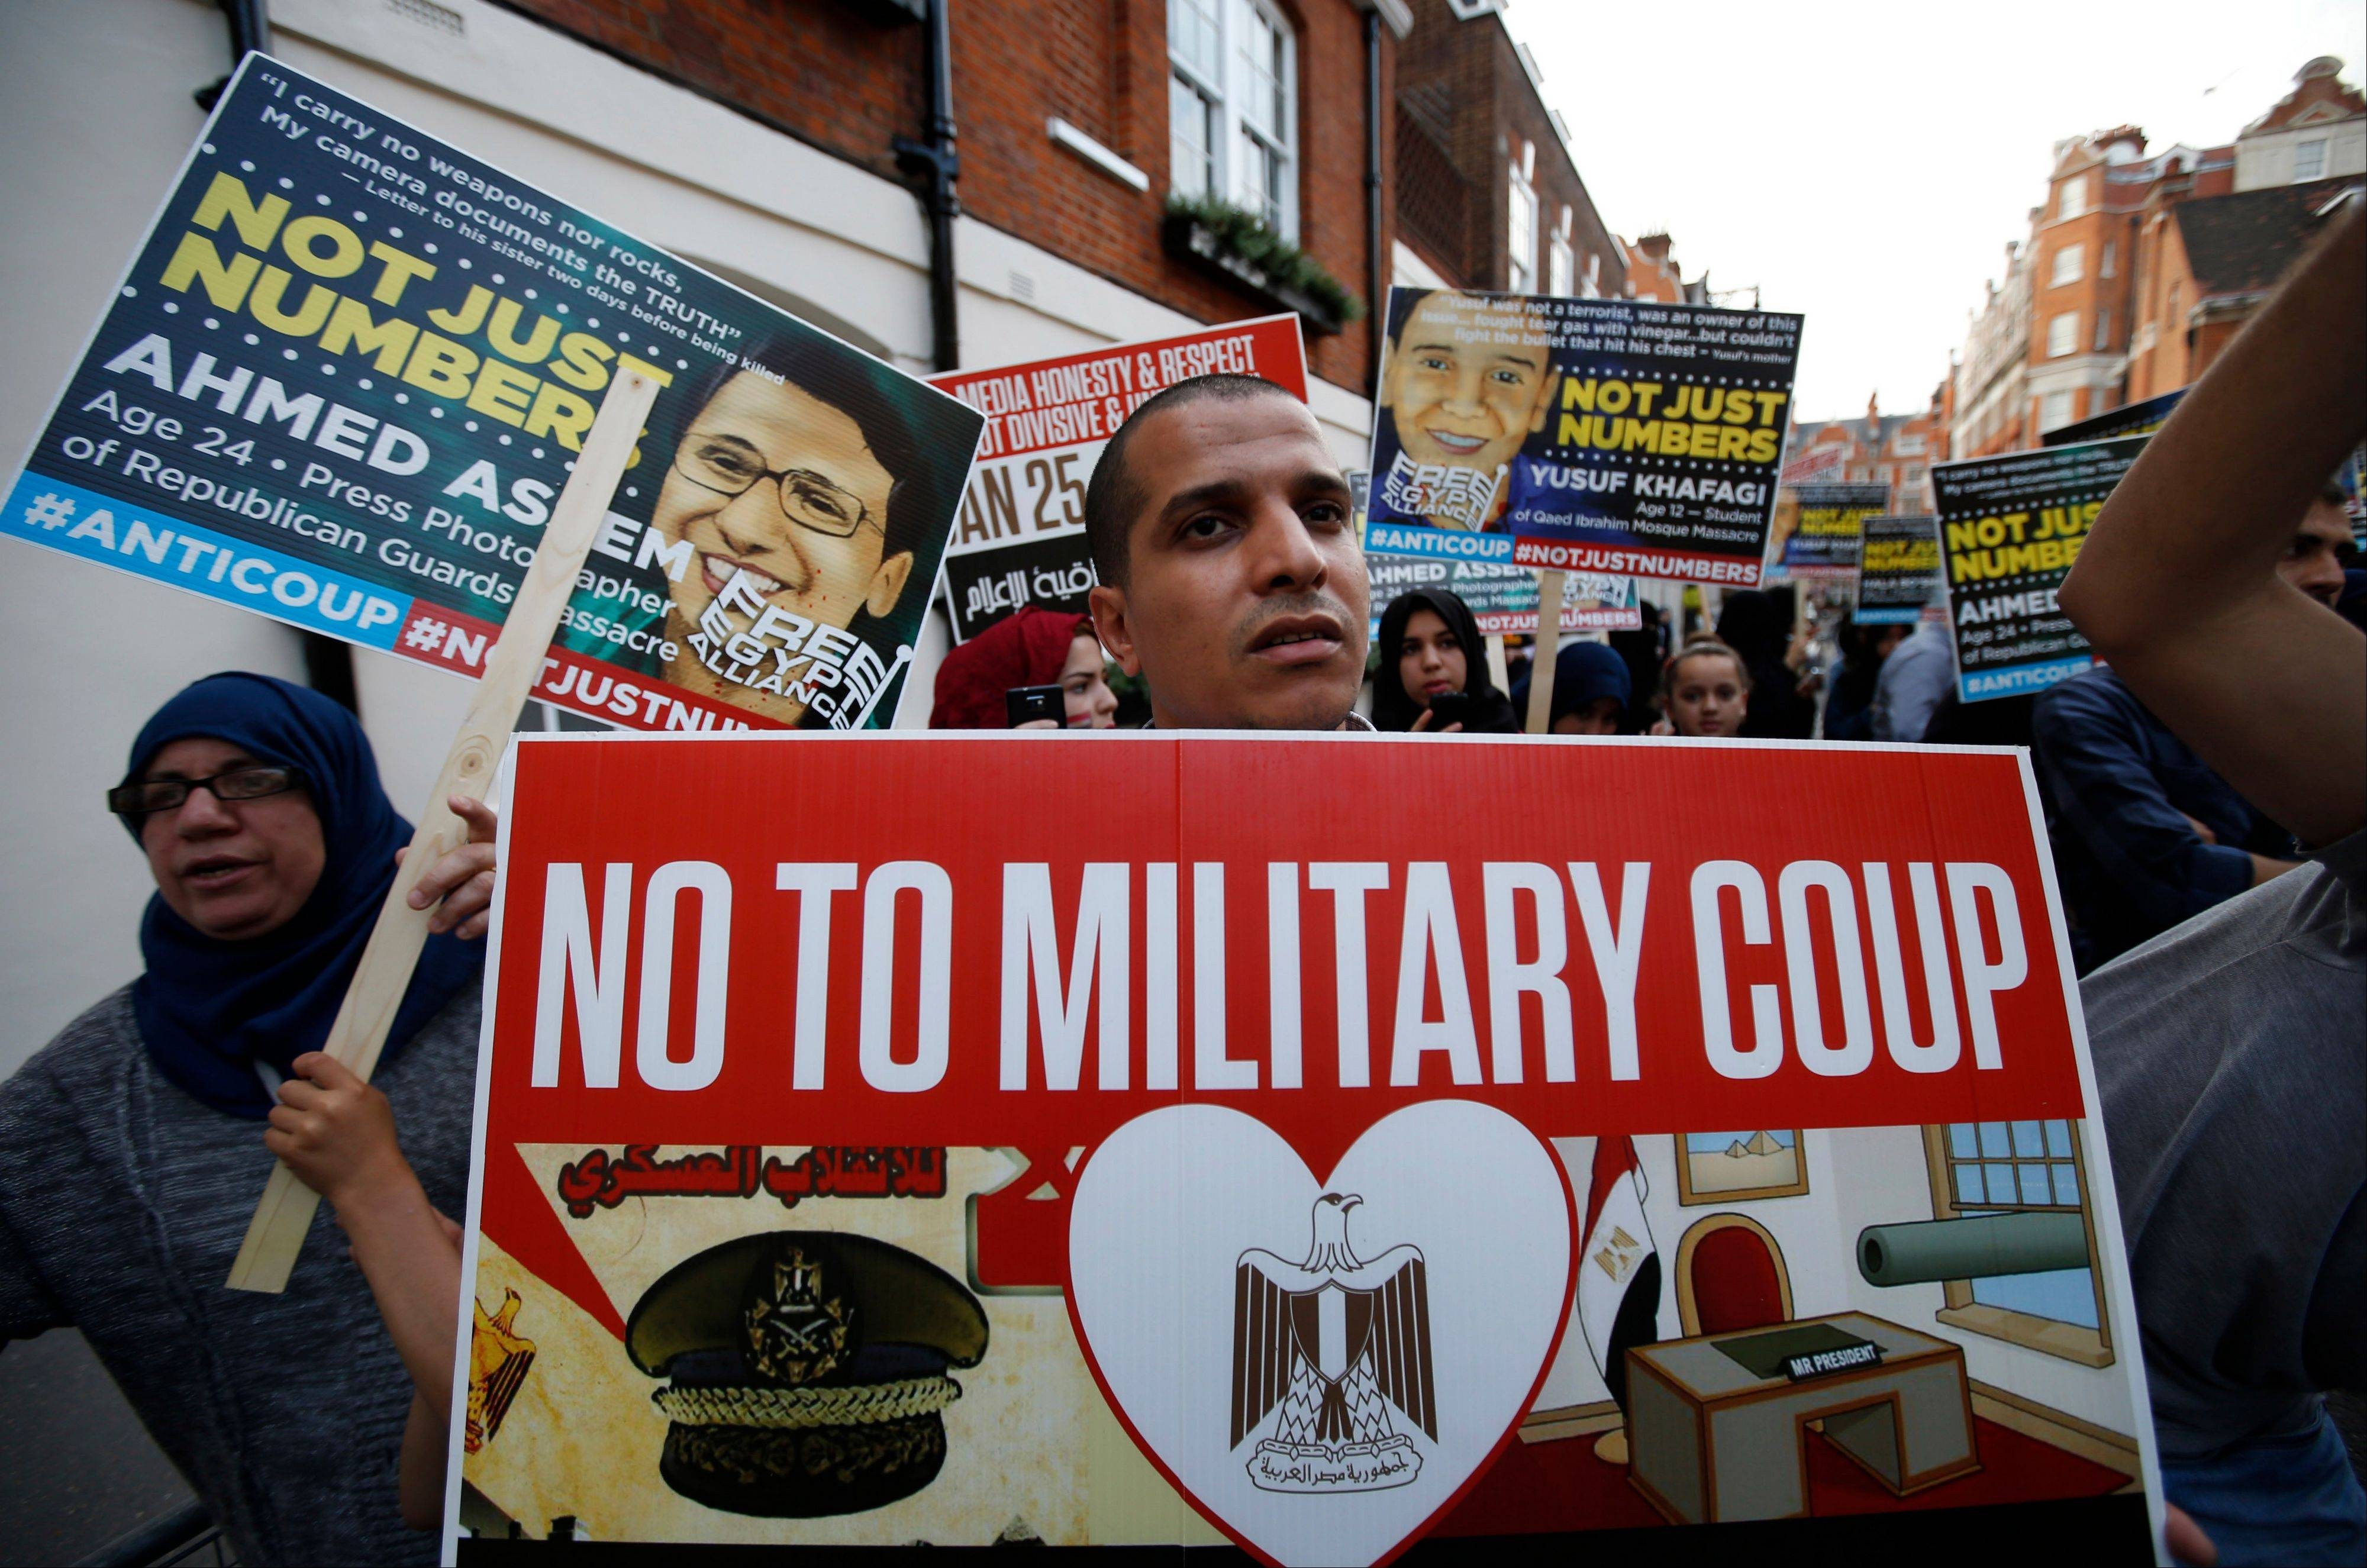 Demonstrators hold placards Friday during a protest against the coup in Egypt, across from the Egyptian embassy in central London.